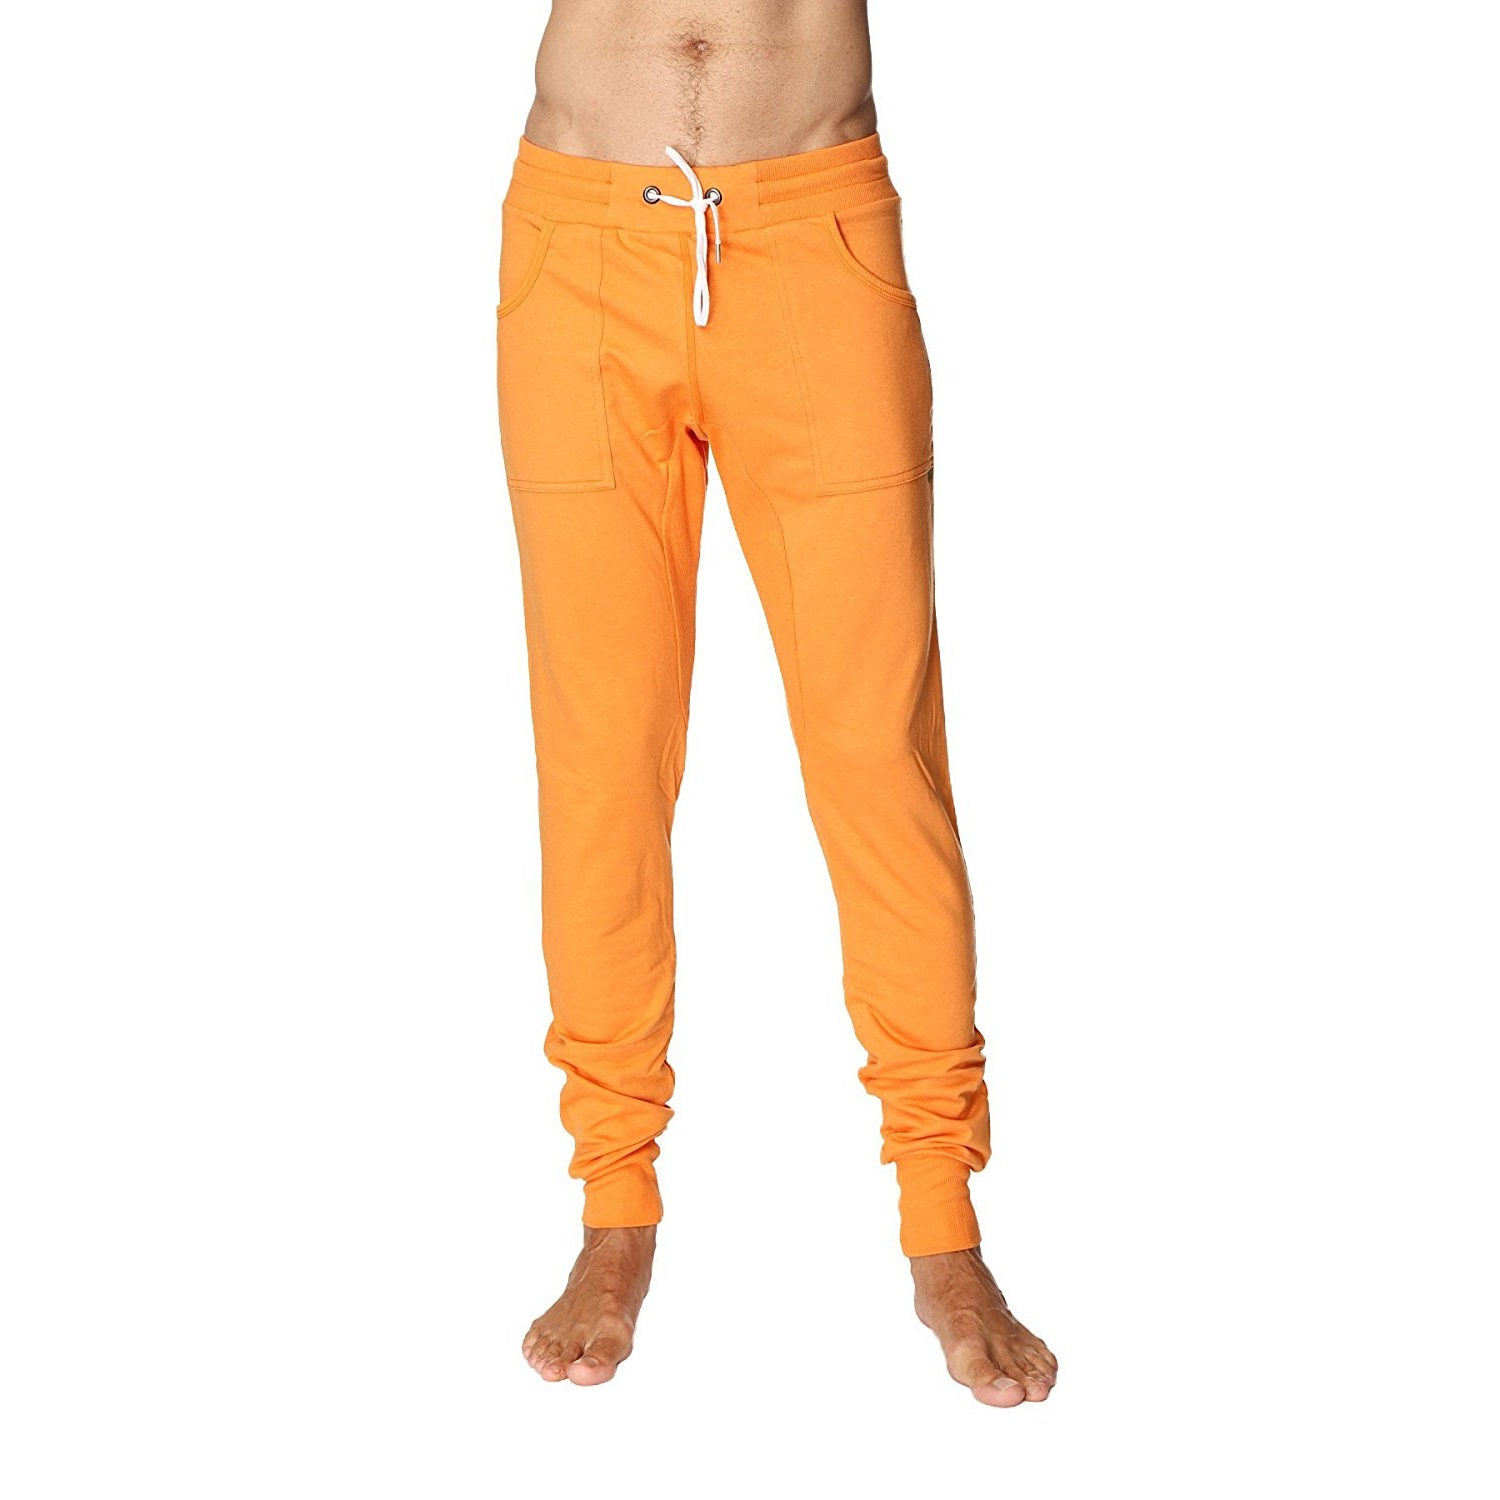 4-rth mens long cuffed jogger yoga pants sun orange